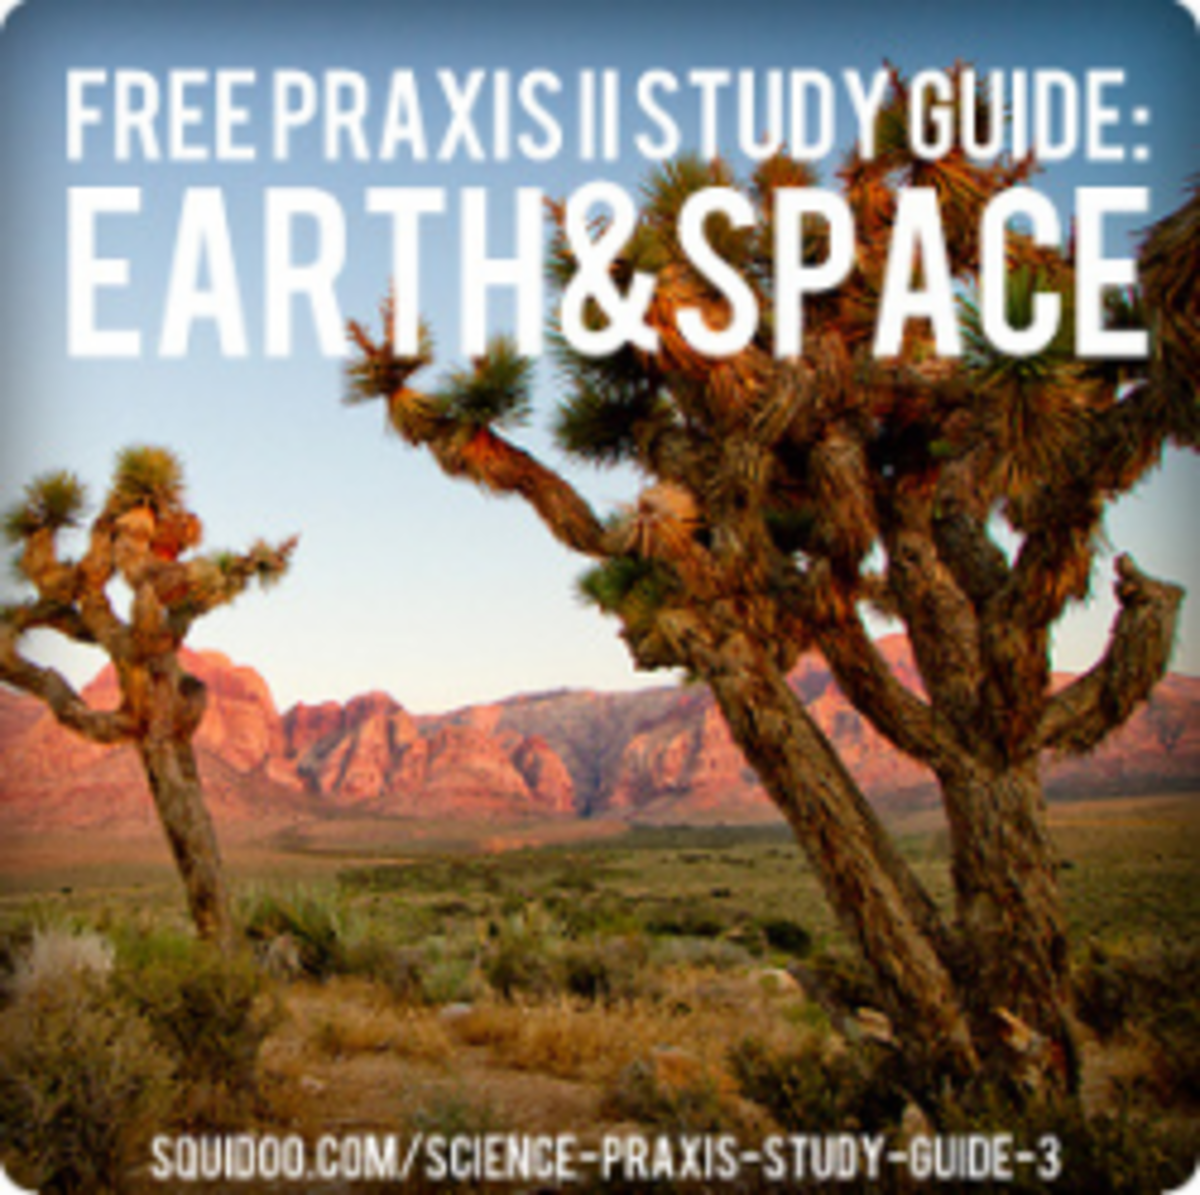 free praxis ii earth and space sciences study guide hubpages Special Education Praxis Study Guide Special Education Praxis Study Guide